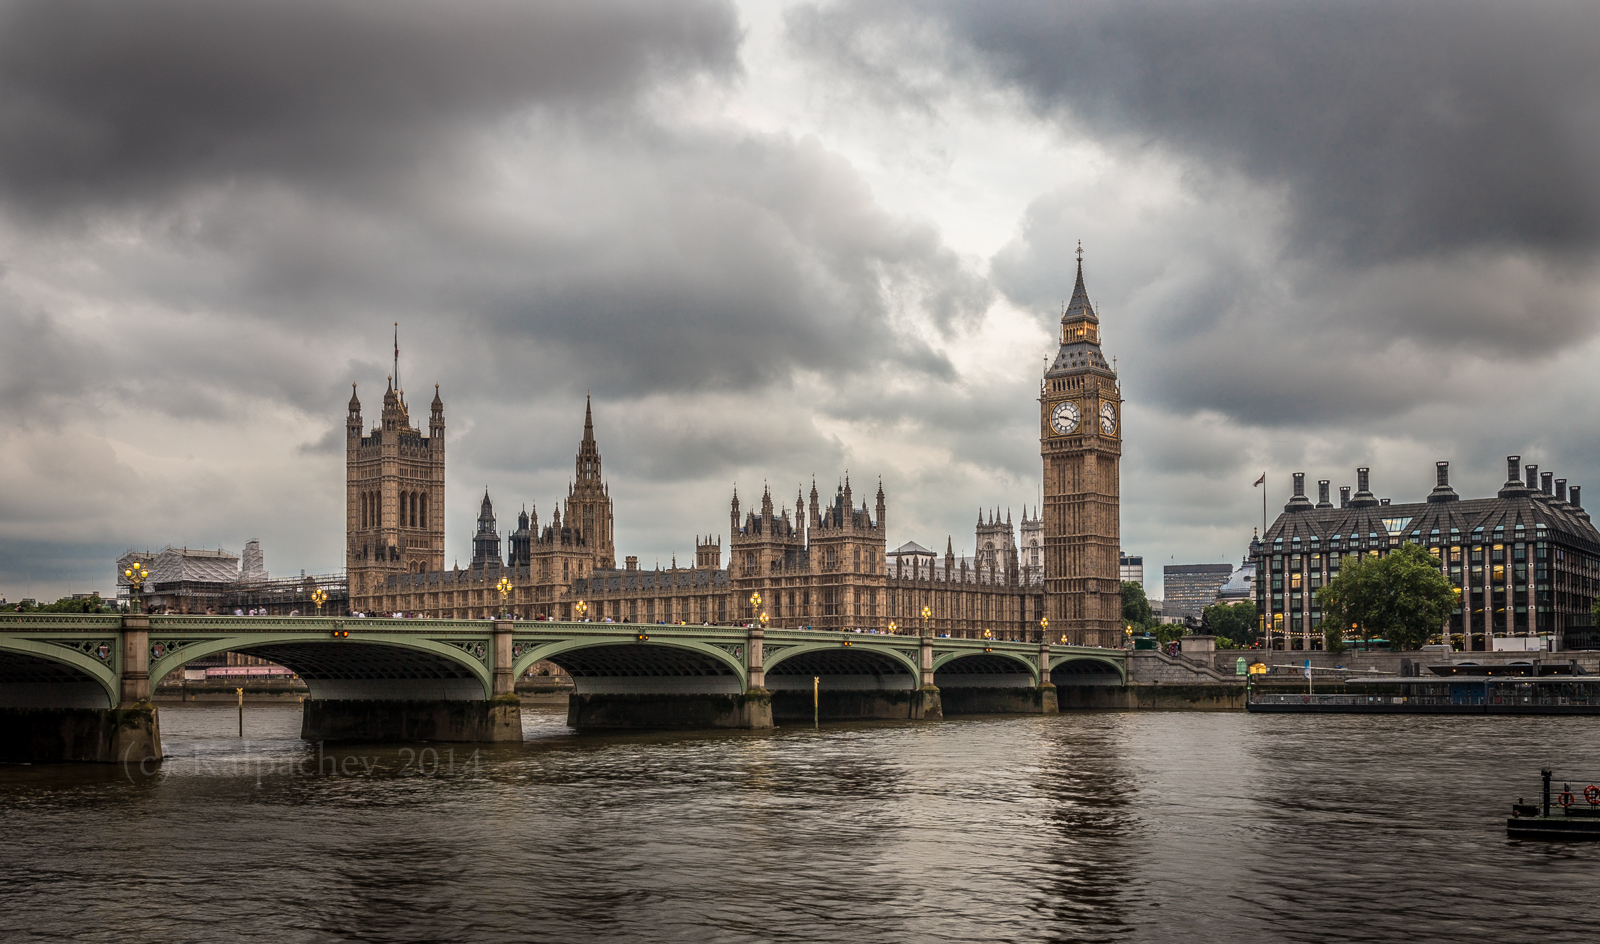 House of Parliament and Big Ben - London